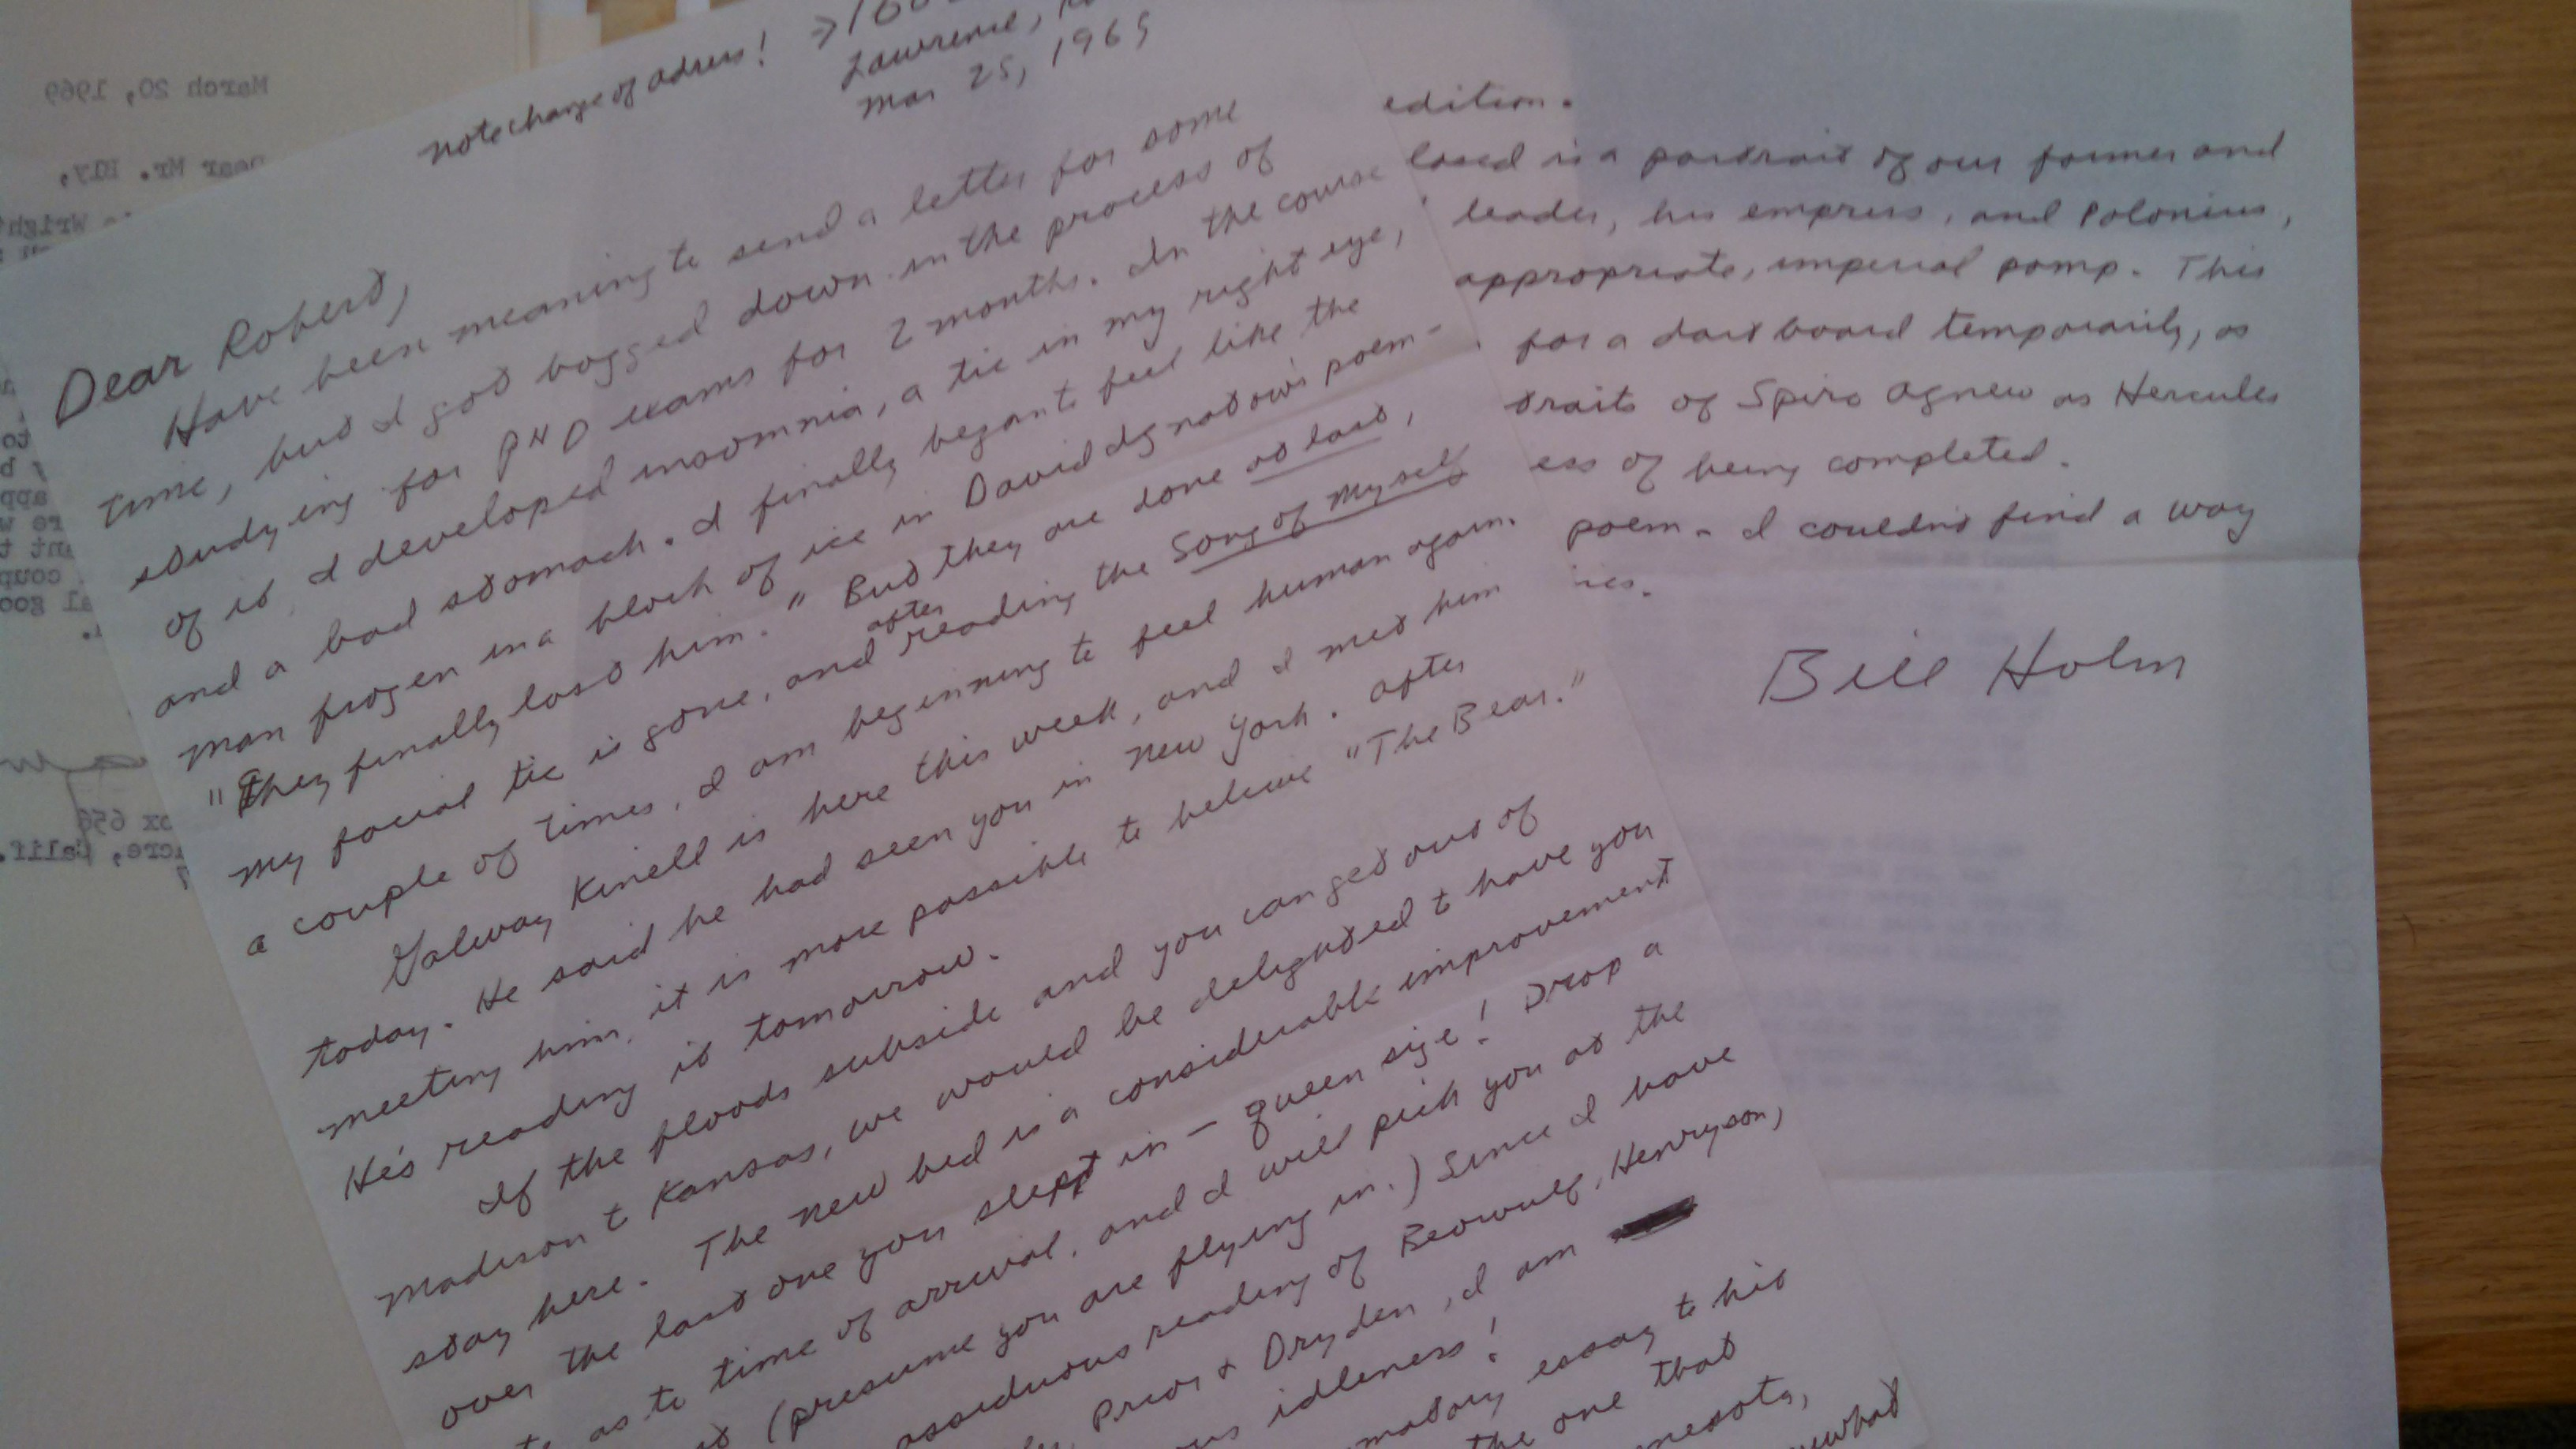 Garrison keillor to robert bly few poets can re order our garrison keillor bill holm letter to robert bly 1969 expocarfo